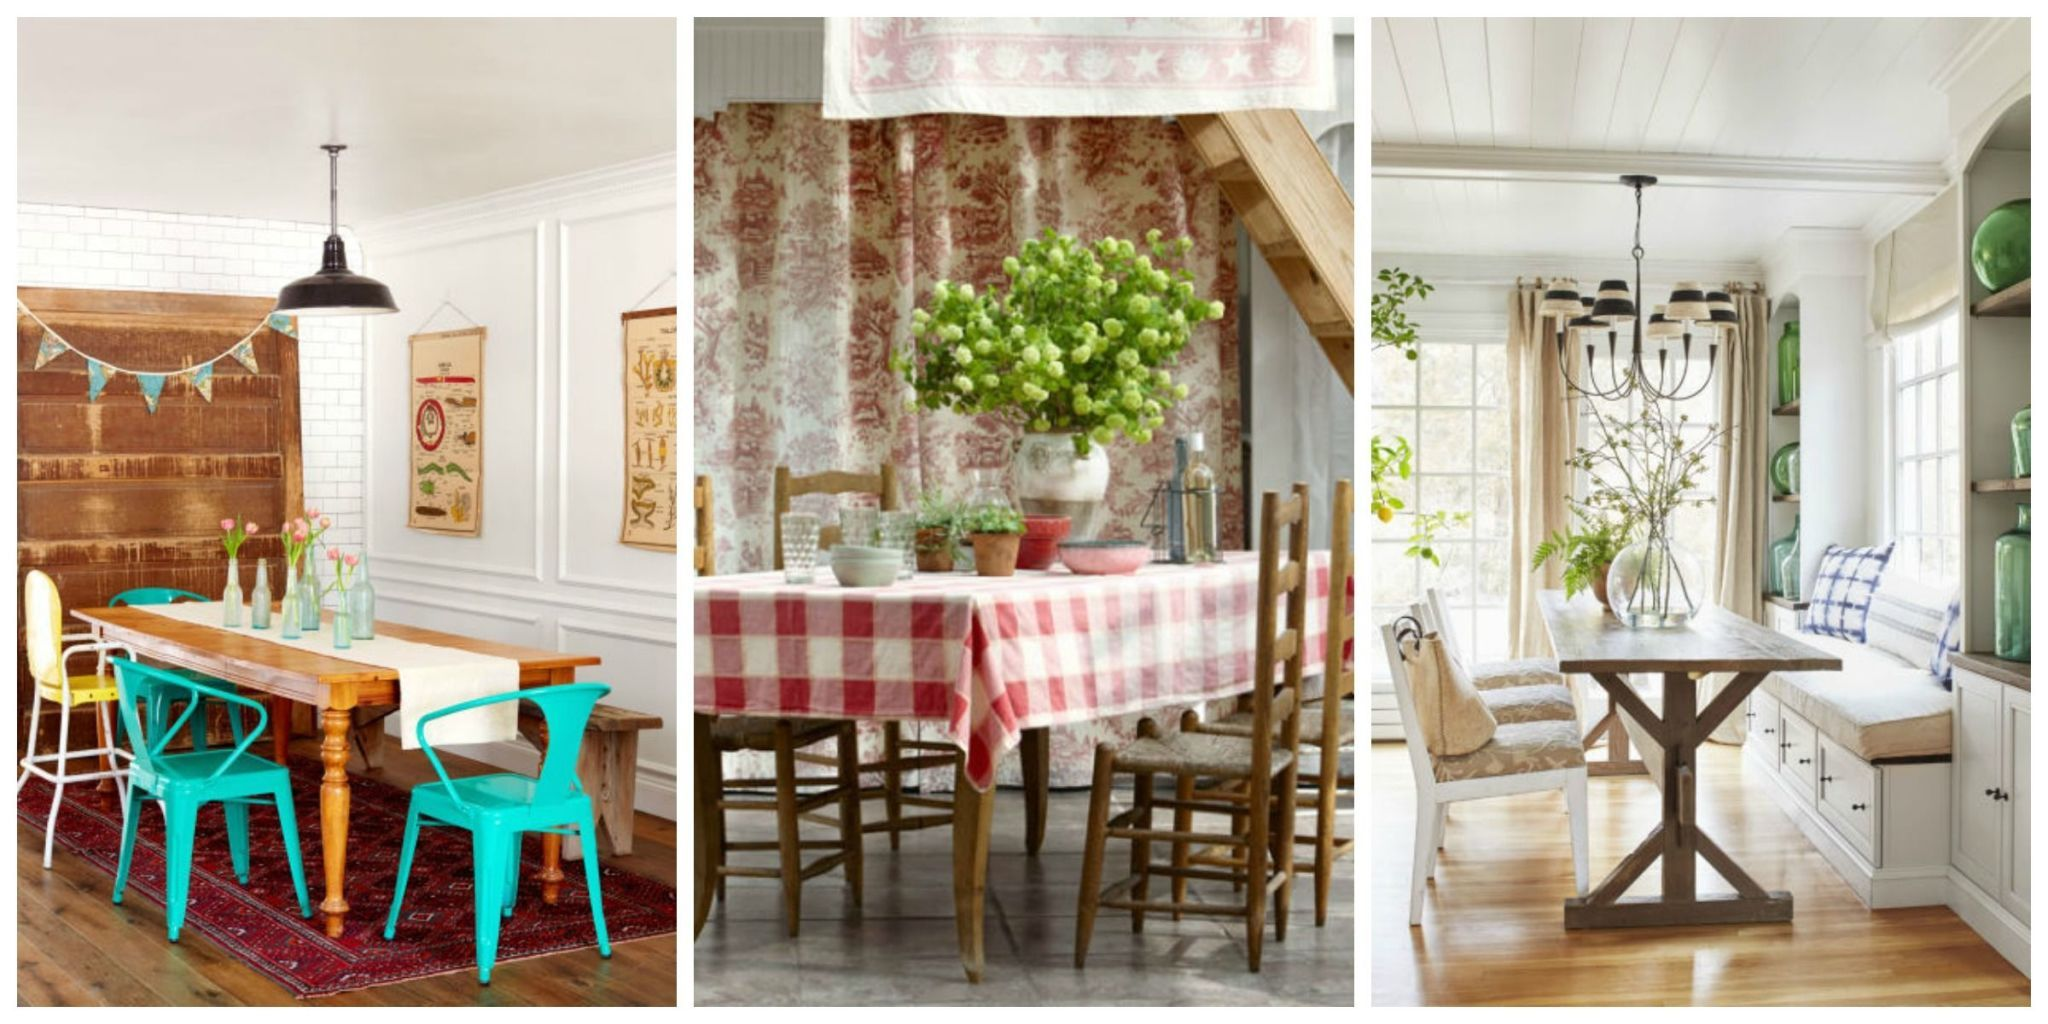 Genial Our Favorite Ways To Transform Your Dining Room. By Country Living Staff